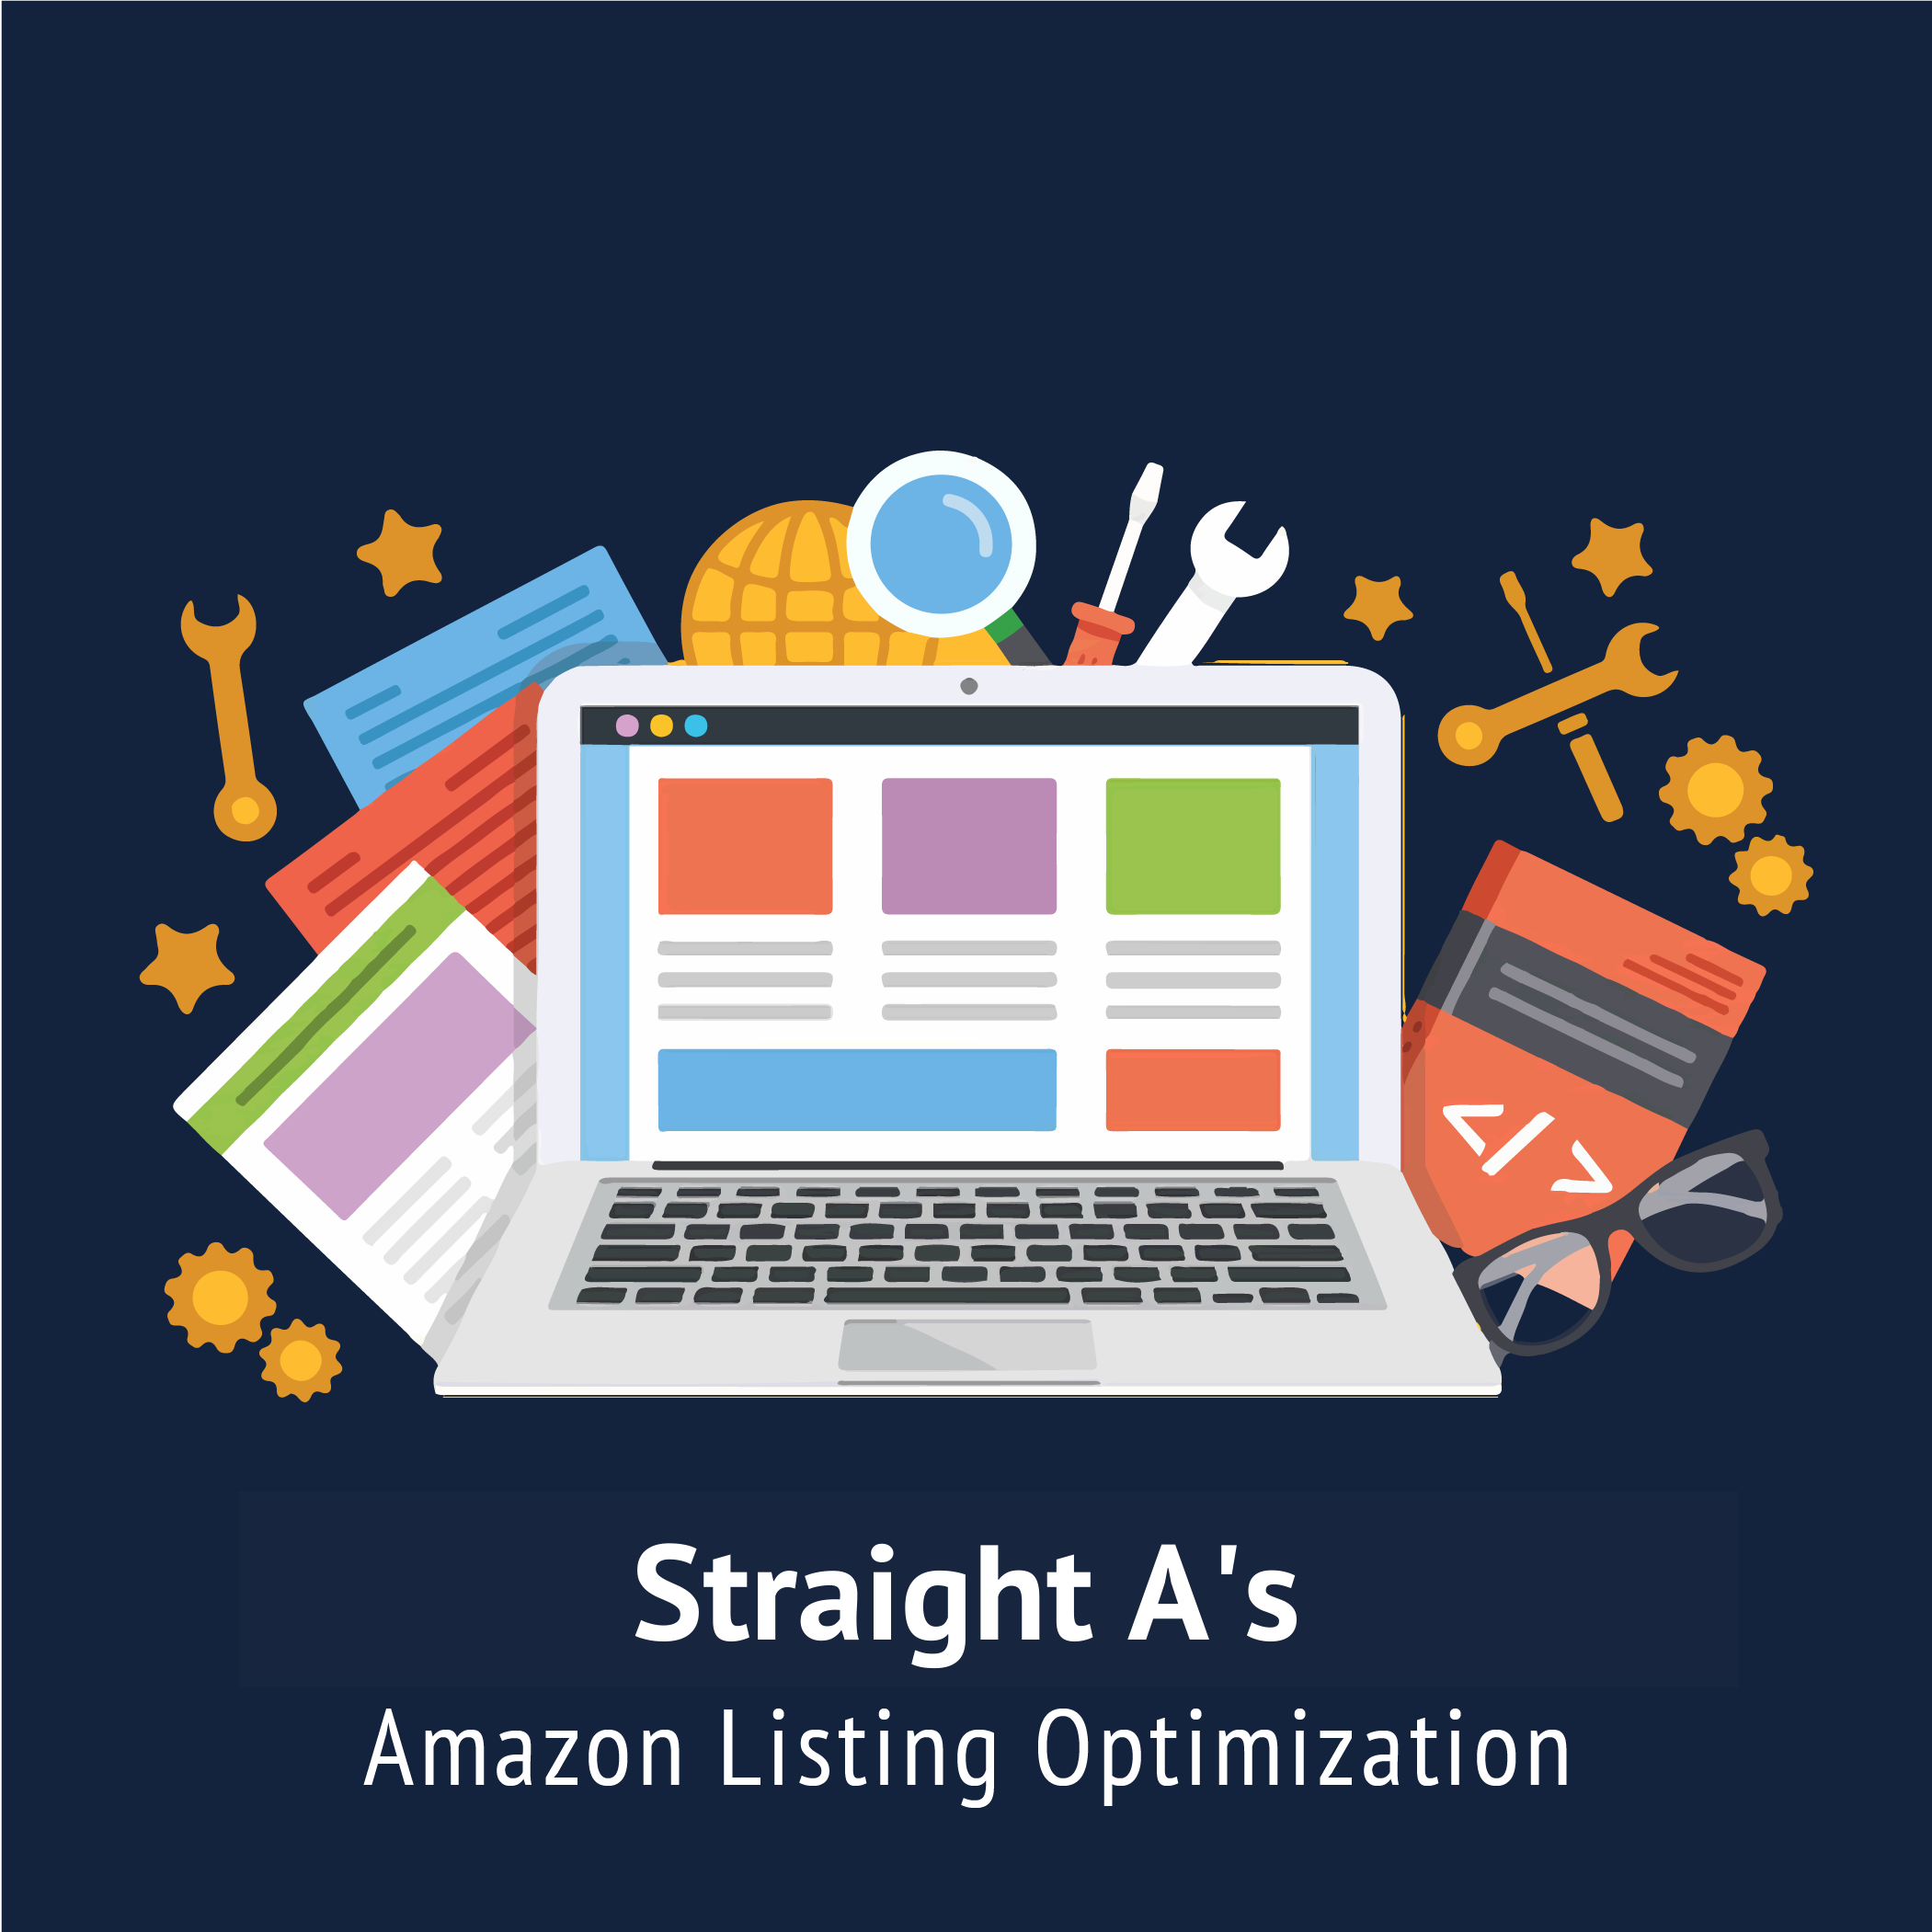 B2B service Amazon Listing Optimization by Marketing by Emma's Emmazon